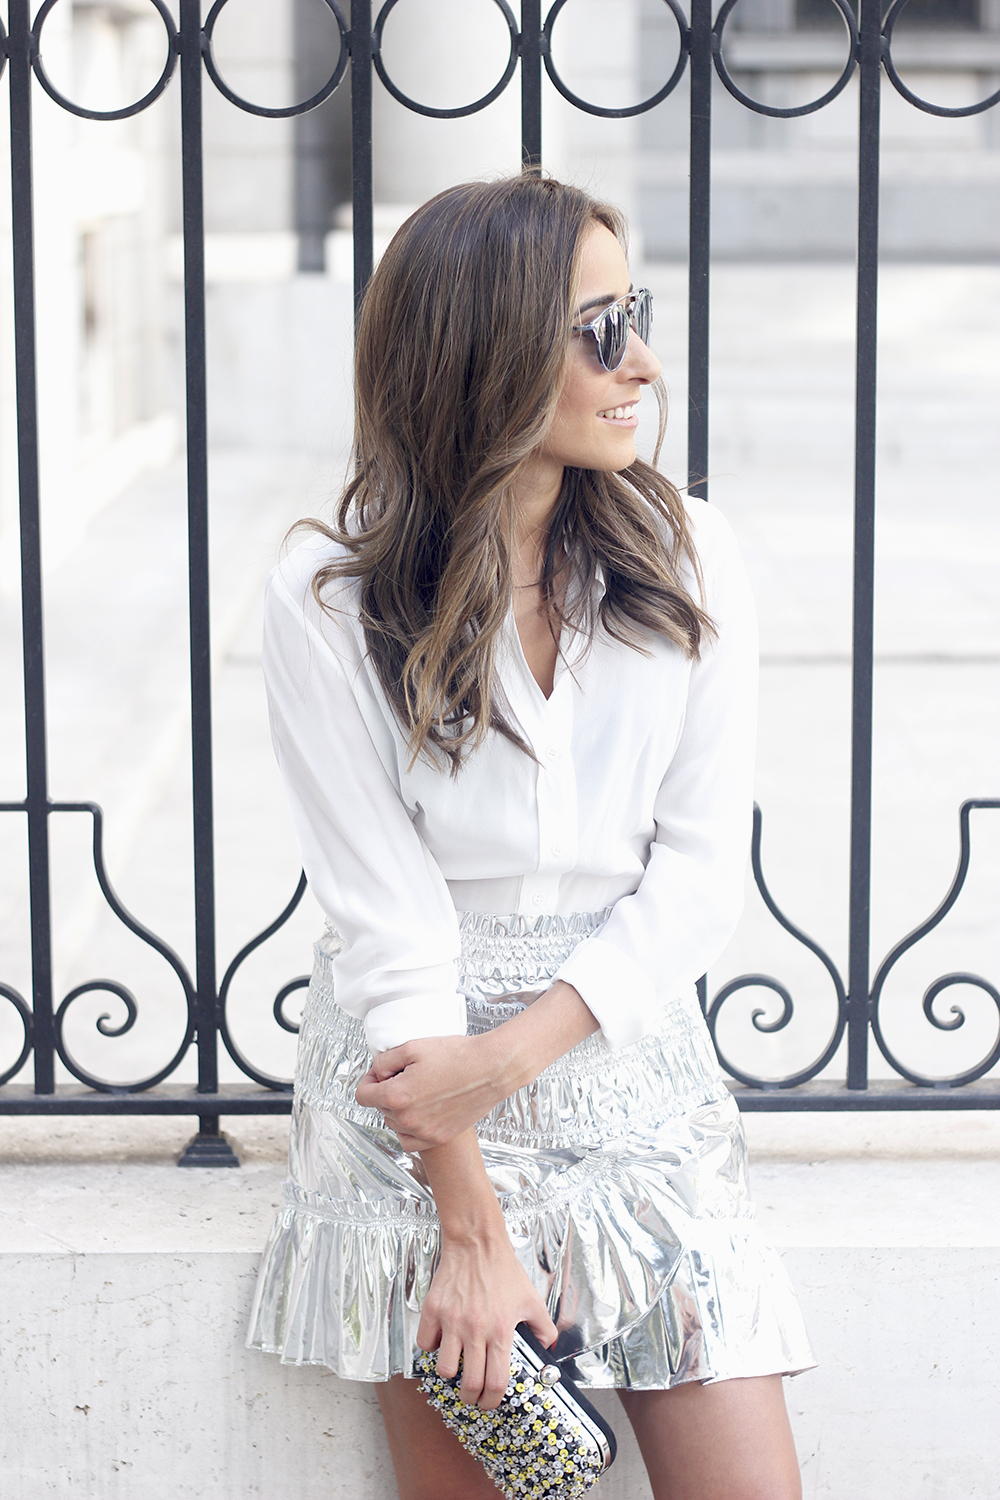 Isabel Marant Metallic Skirt white shirt nude sandals dior so real sunnies outfit style fashion11